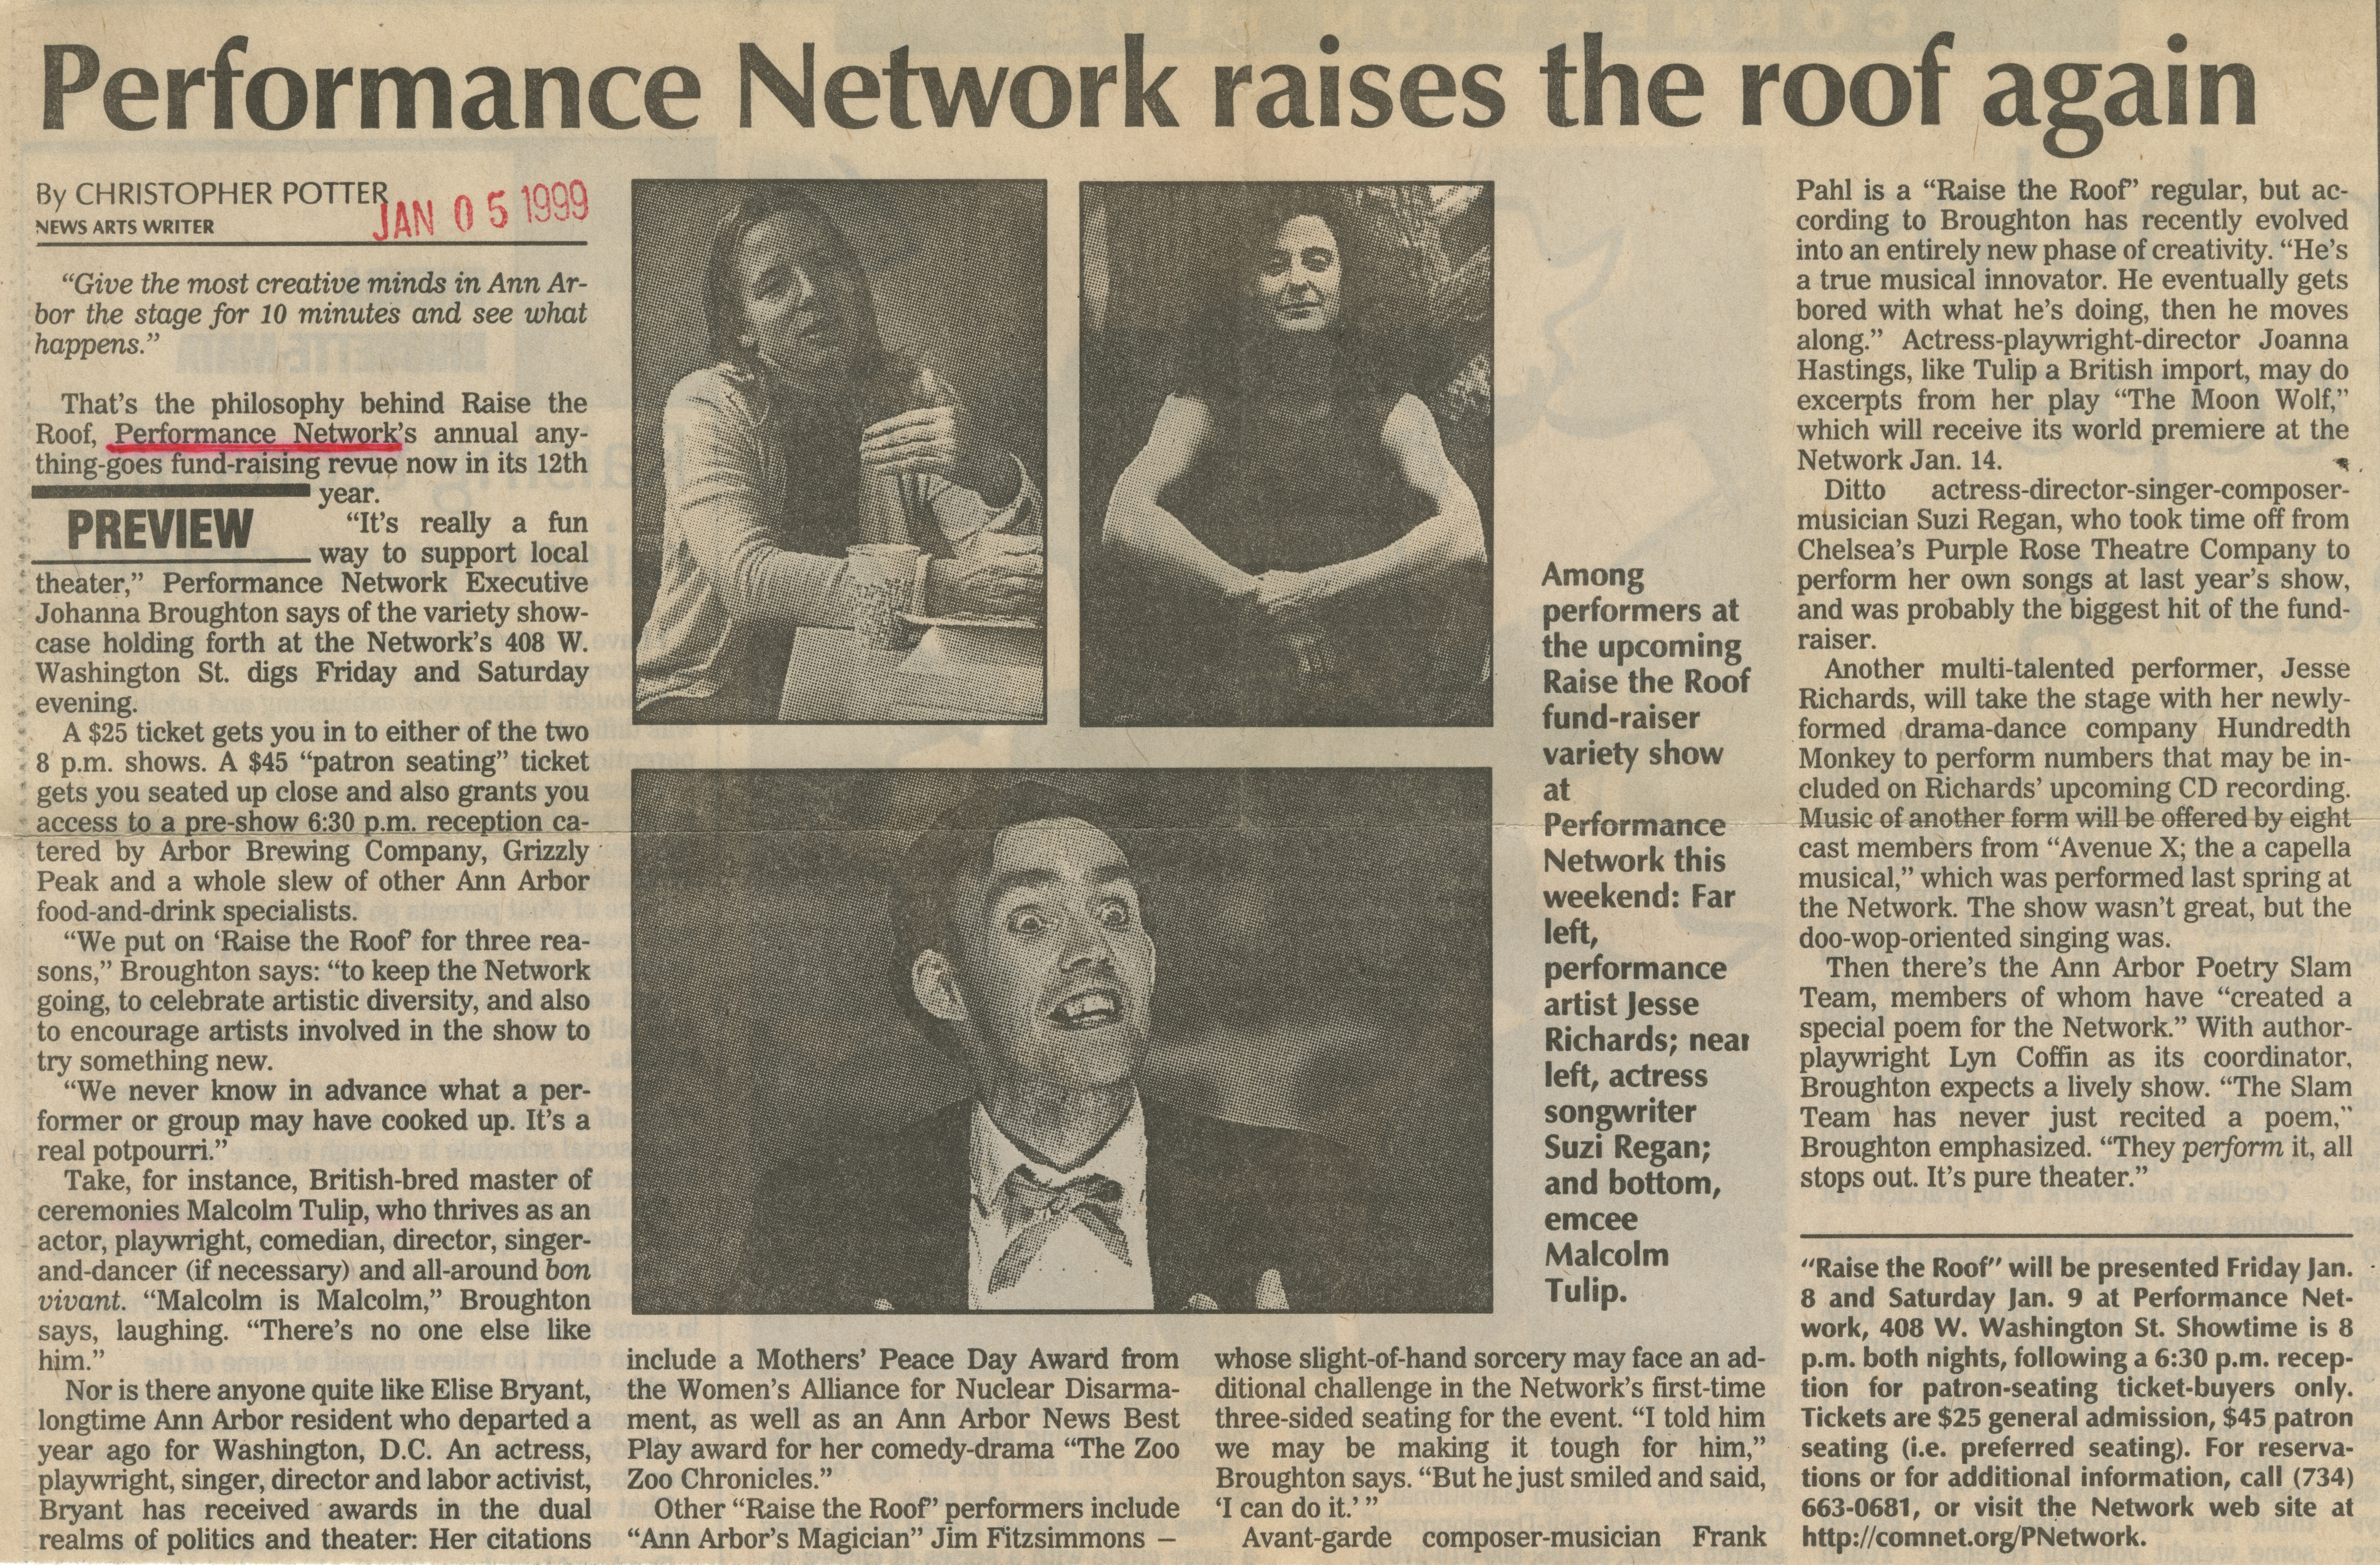 Performance Network raises the roof again image